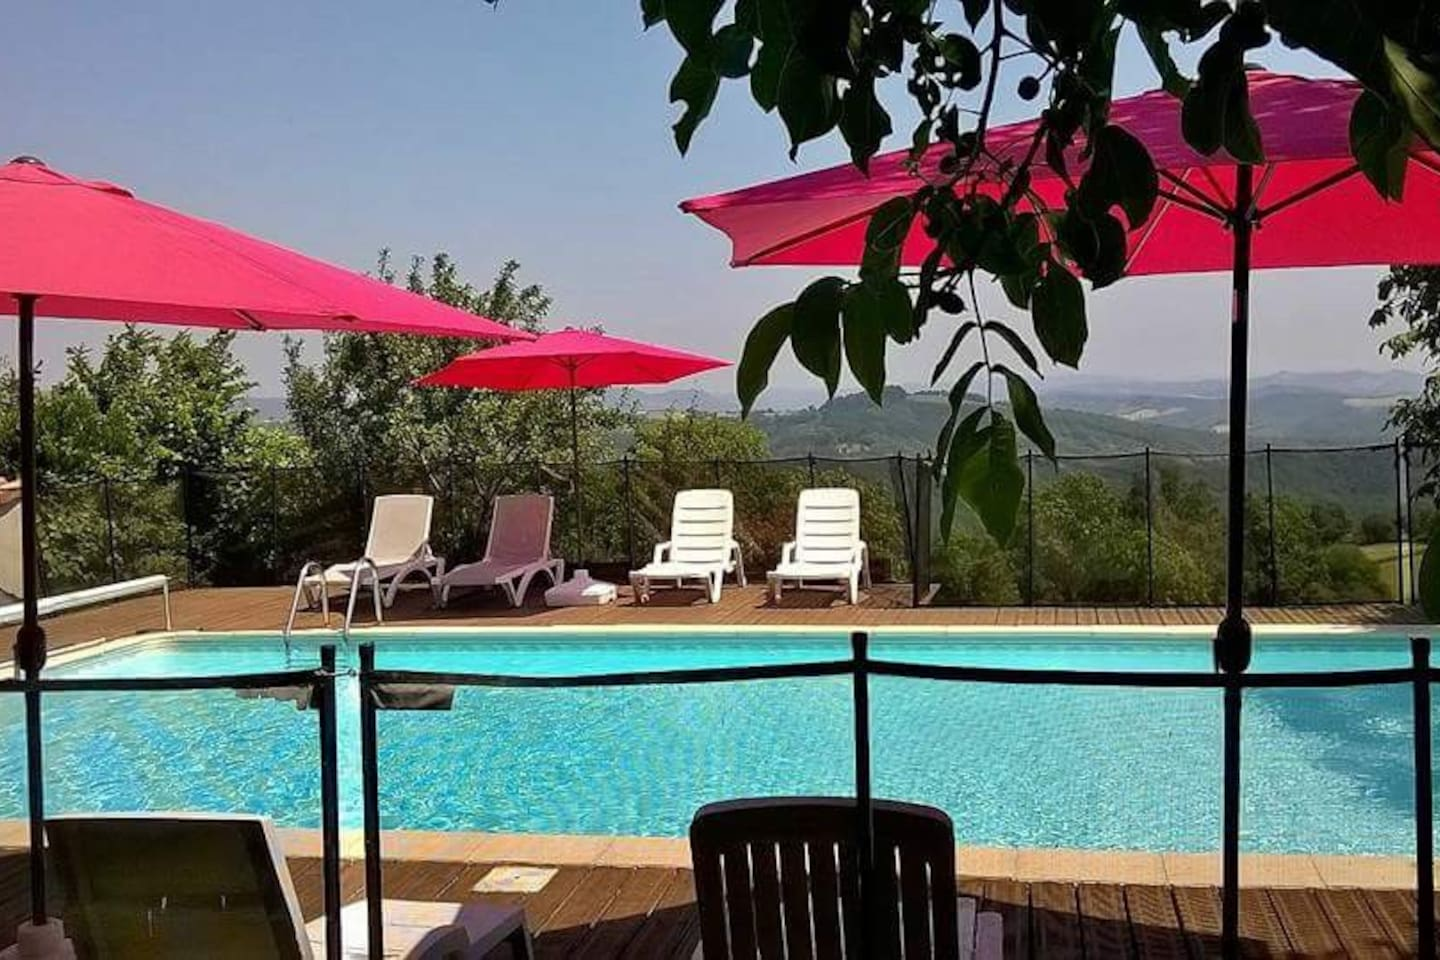 Sunny days by the pool with a stunning view!